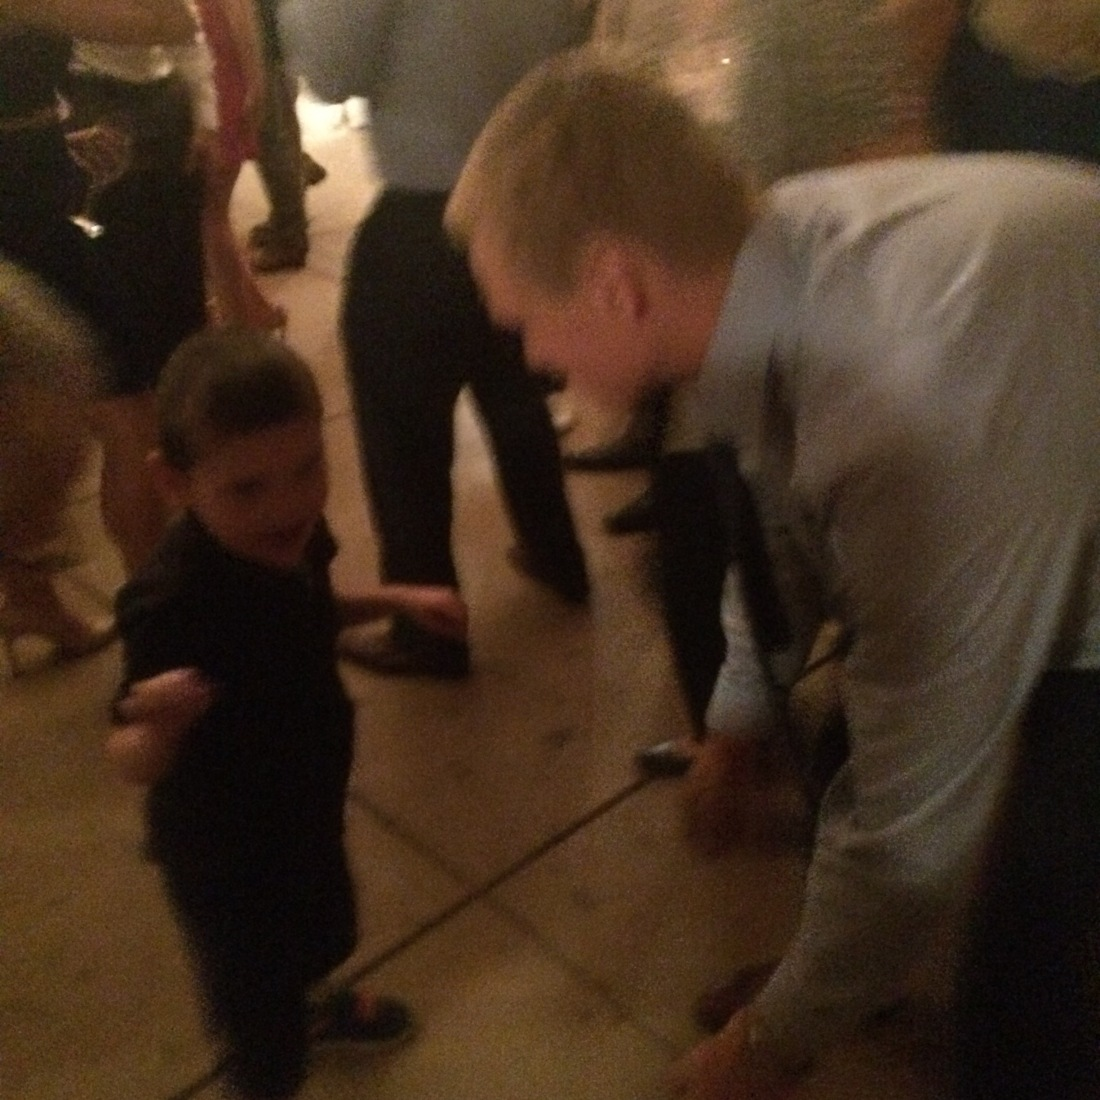 Rudy dancing with the groom!